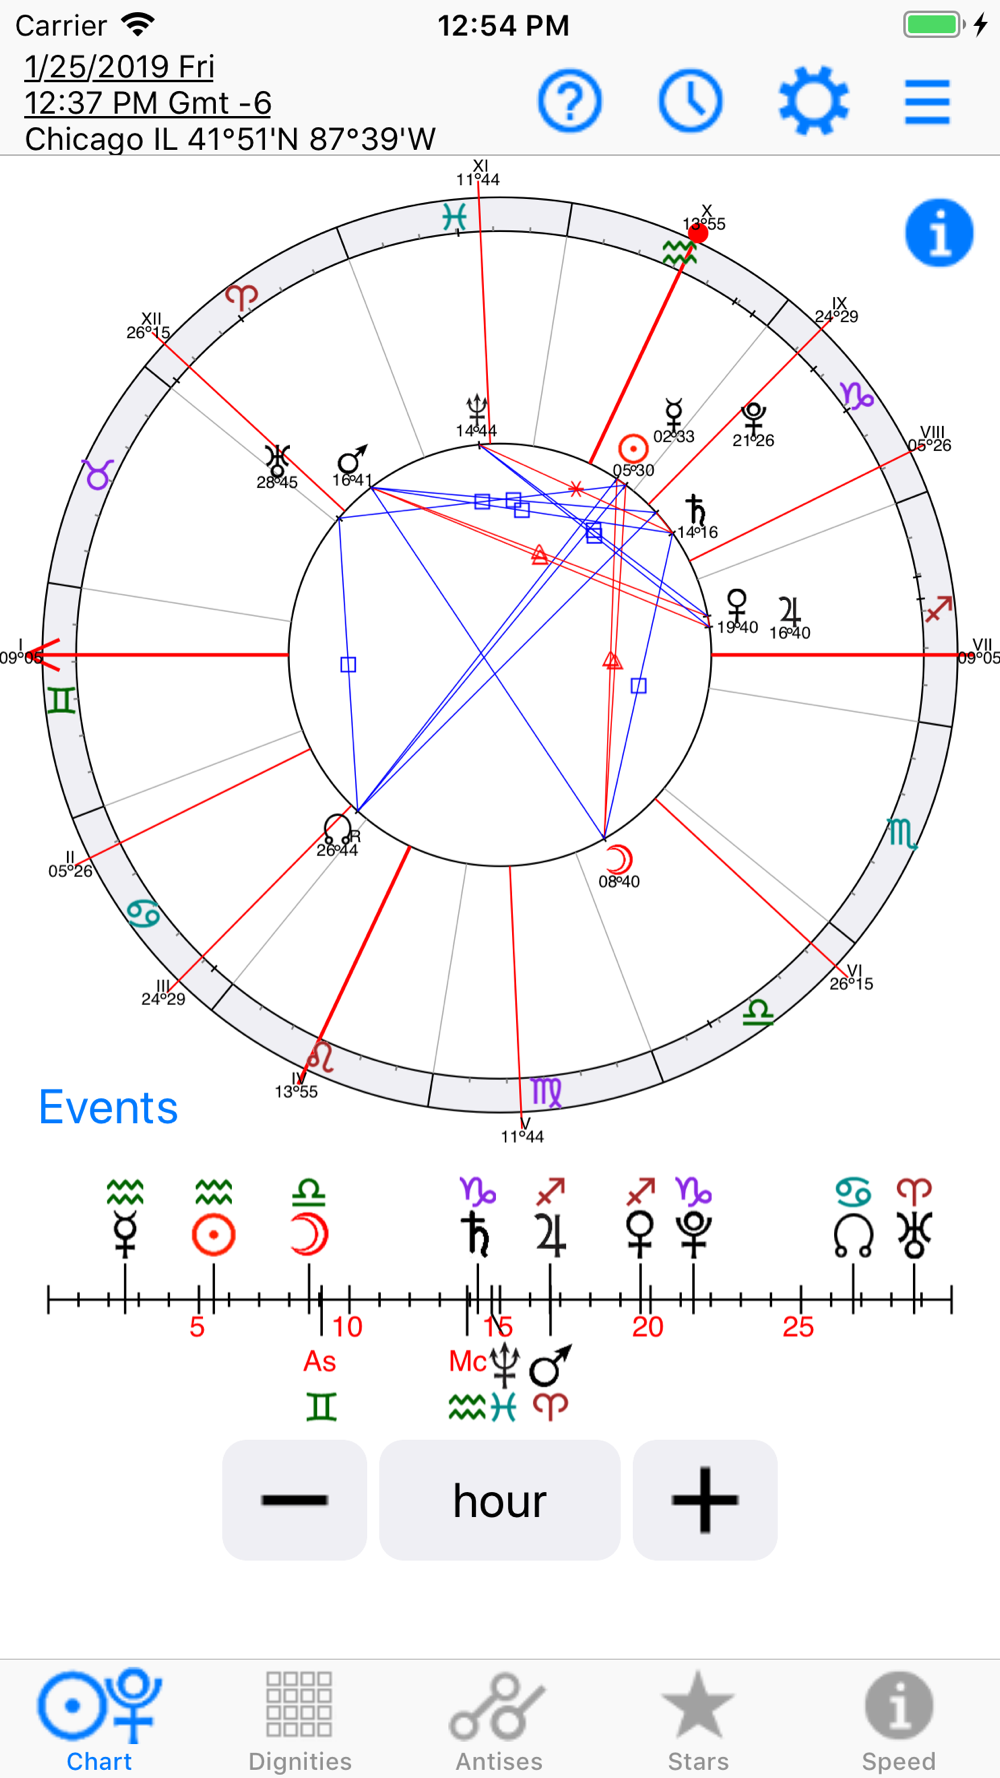 Astrology Horary Chart Download App for iPhone   STEPrimo.com